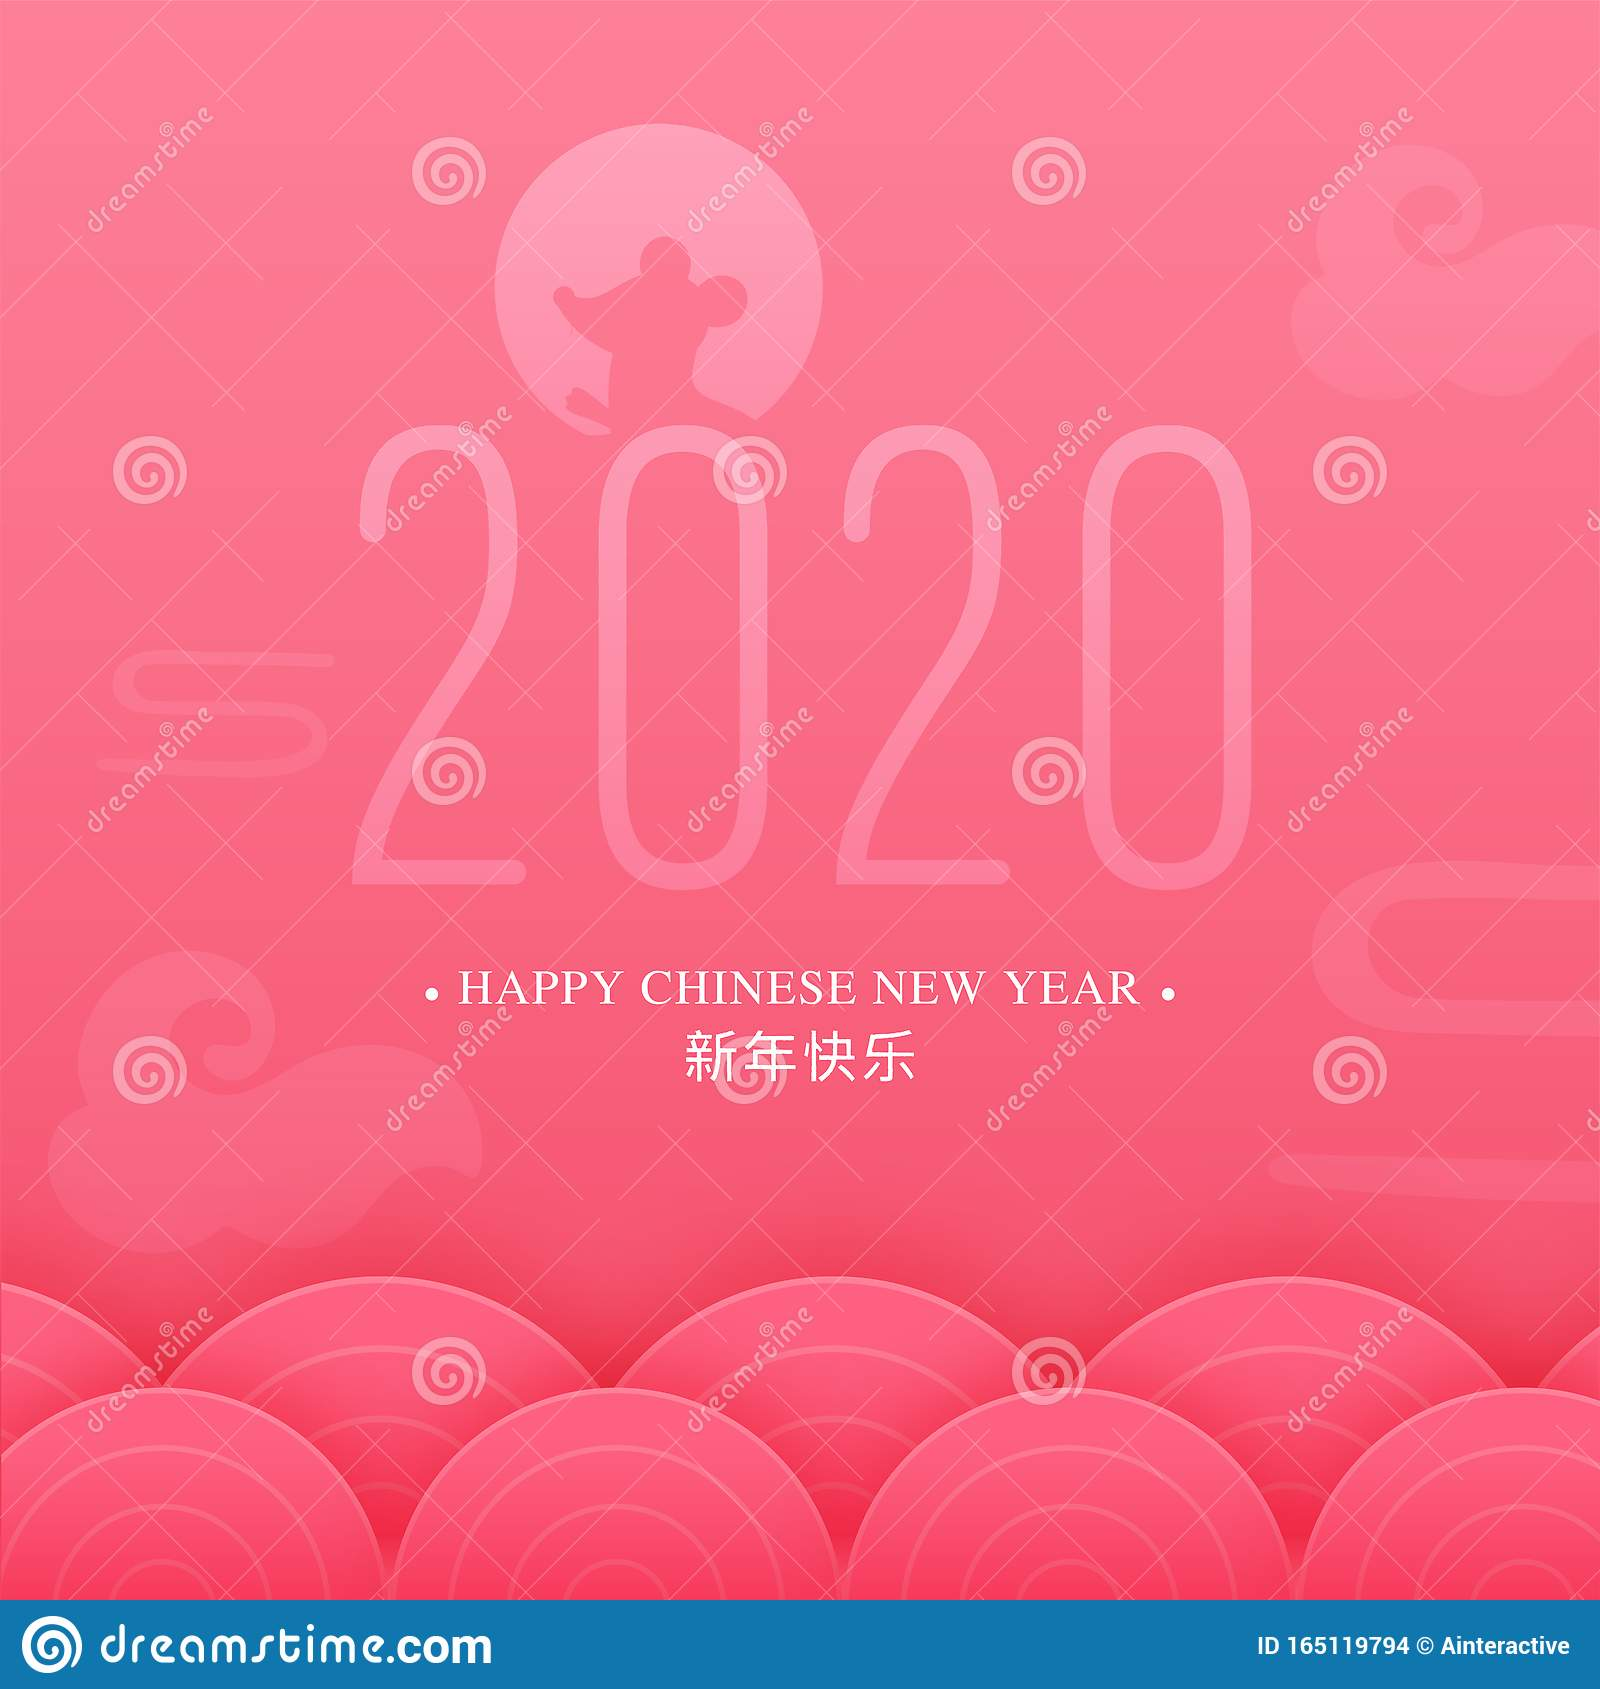 Happy Chinese New Year 2020 greeting card design with rat zodiac sign and paper cut circular wave on pink background